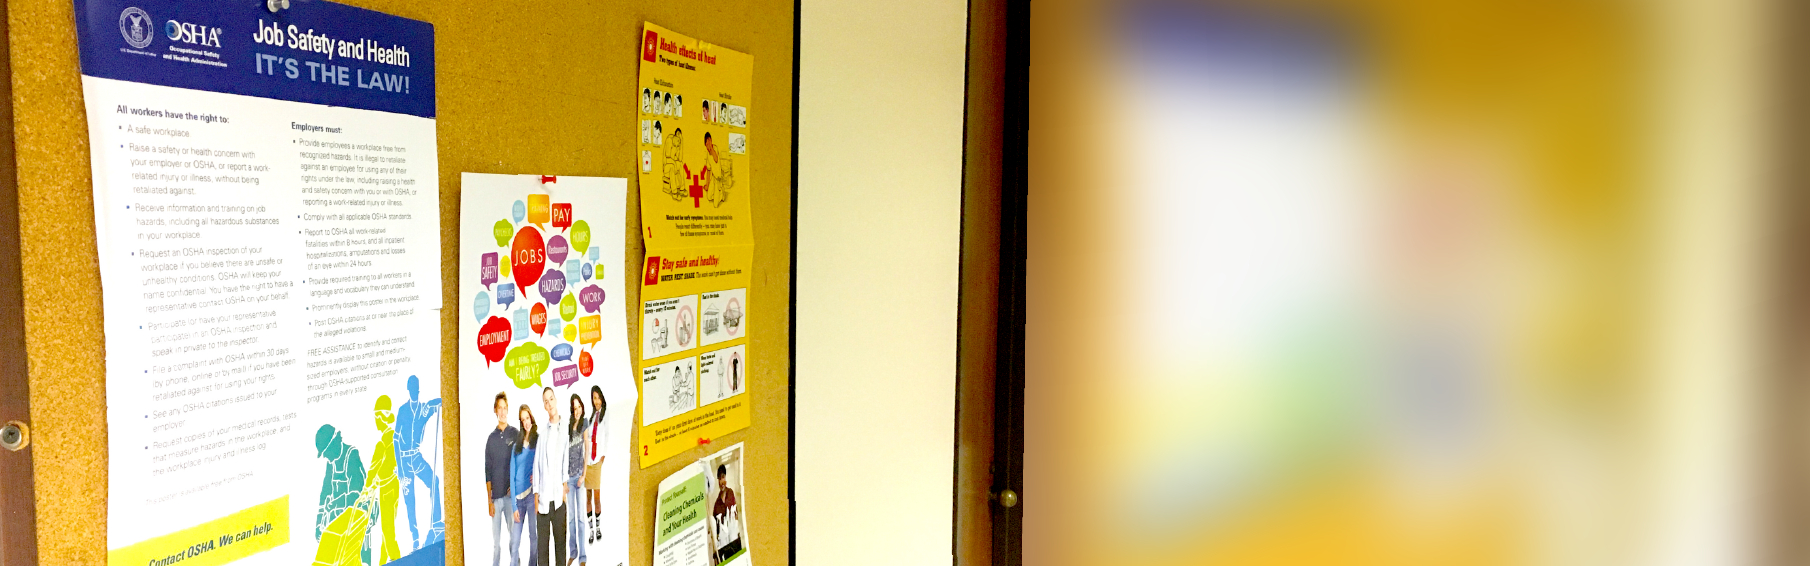 Osha Publications   Occupational Safety And Health Administration - Free Printable Osha Posters